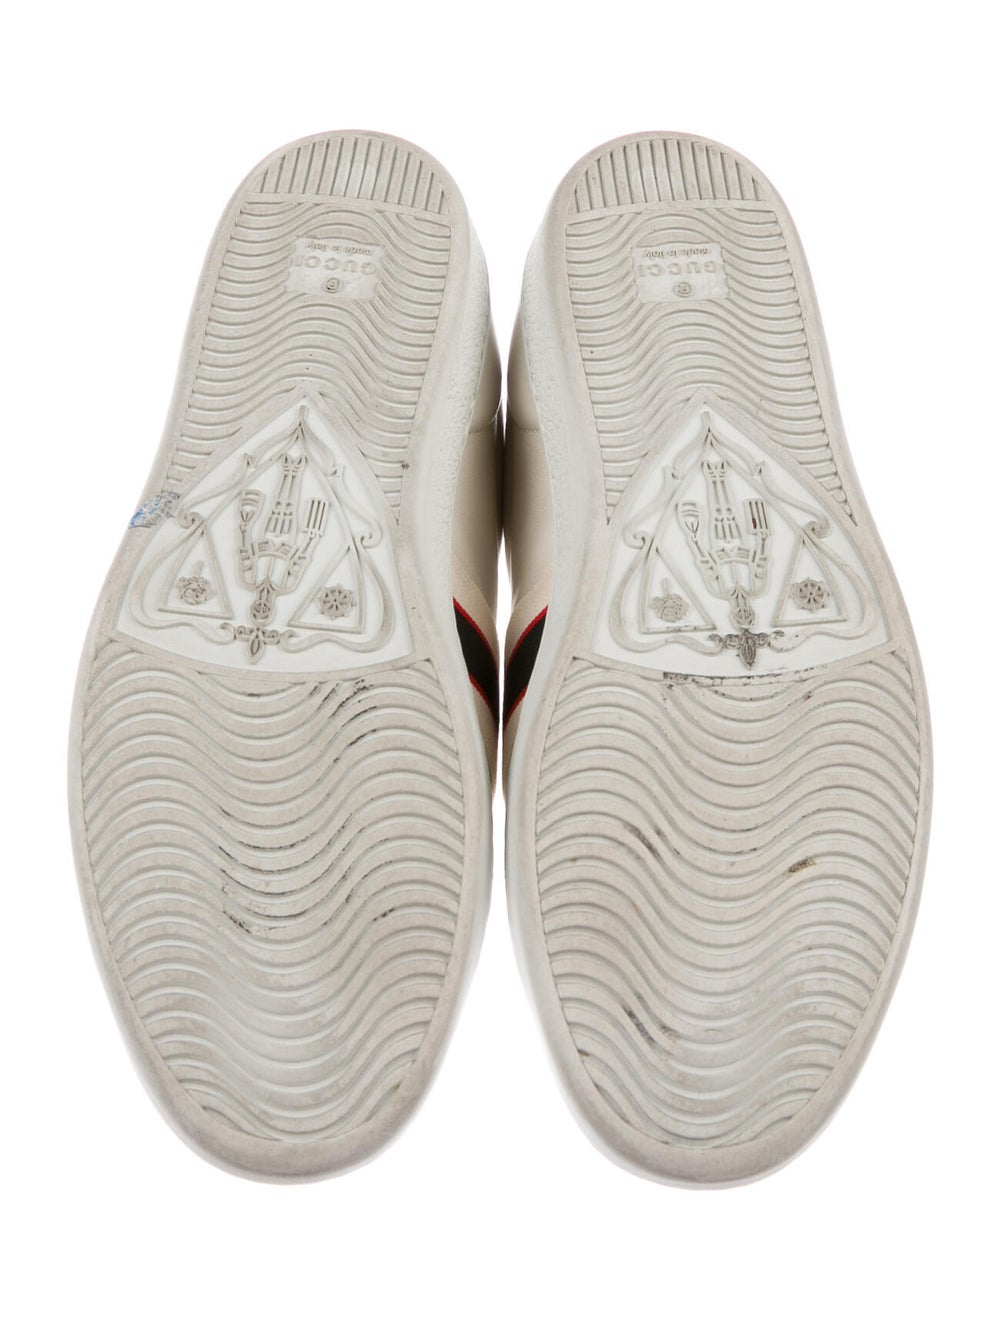 Gucci Ace Sneakers - image 5